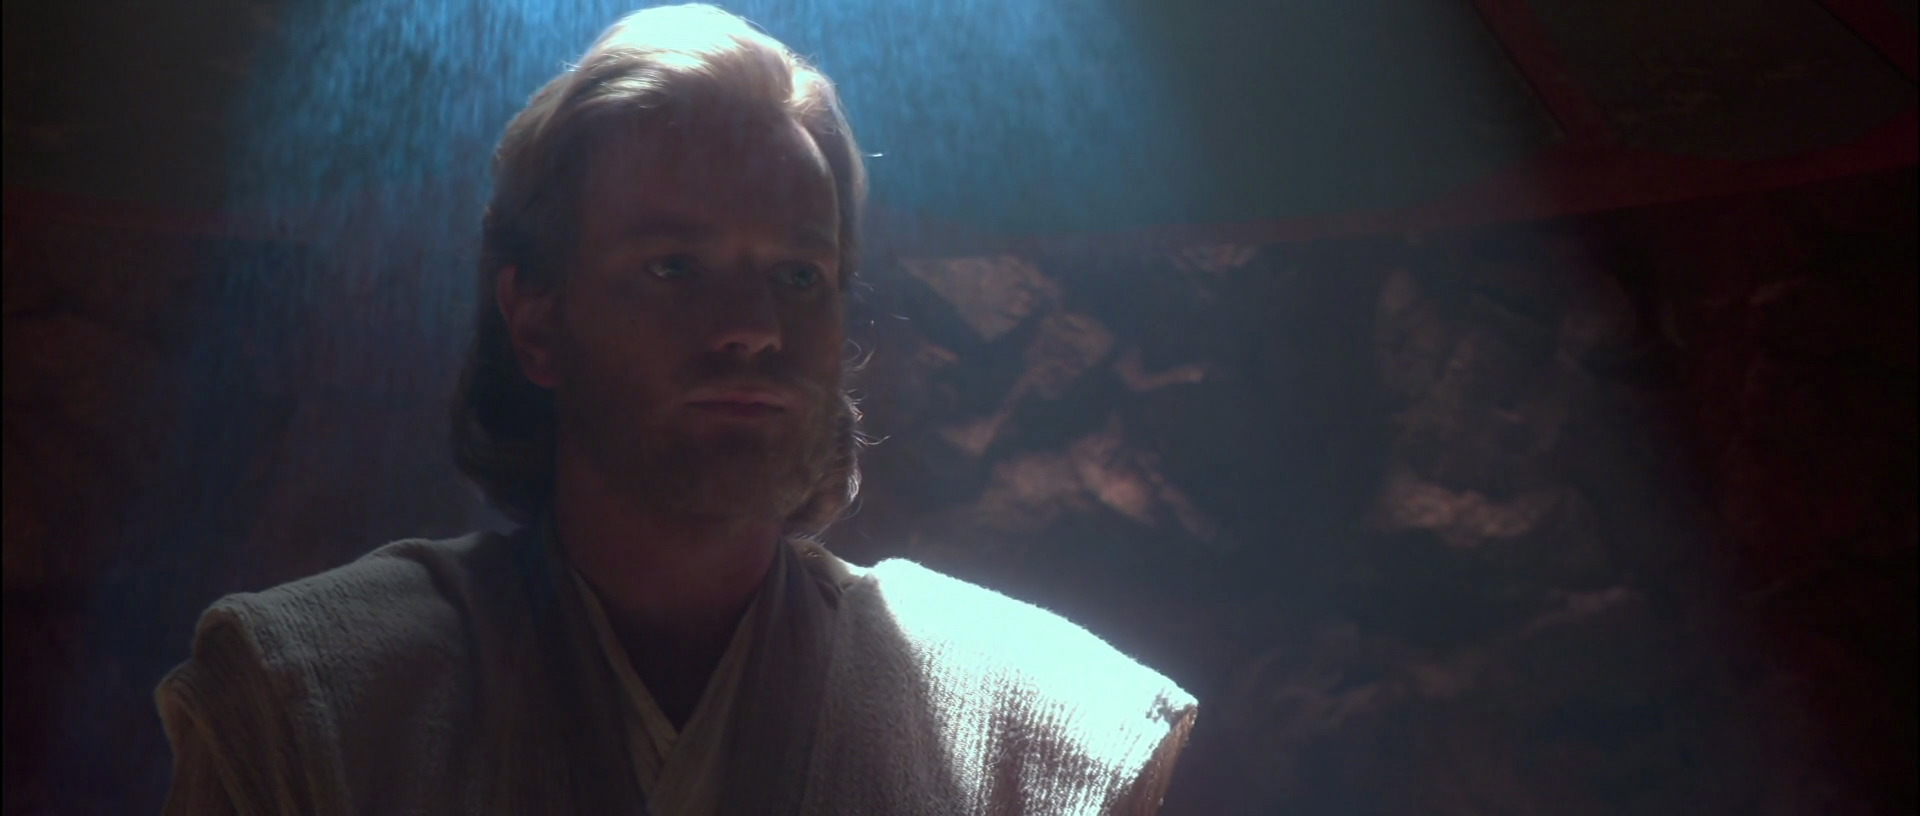 Obi-Wan_Kenobi_held_prisoner_by_Count_Dooku